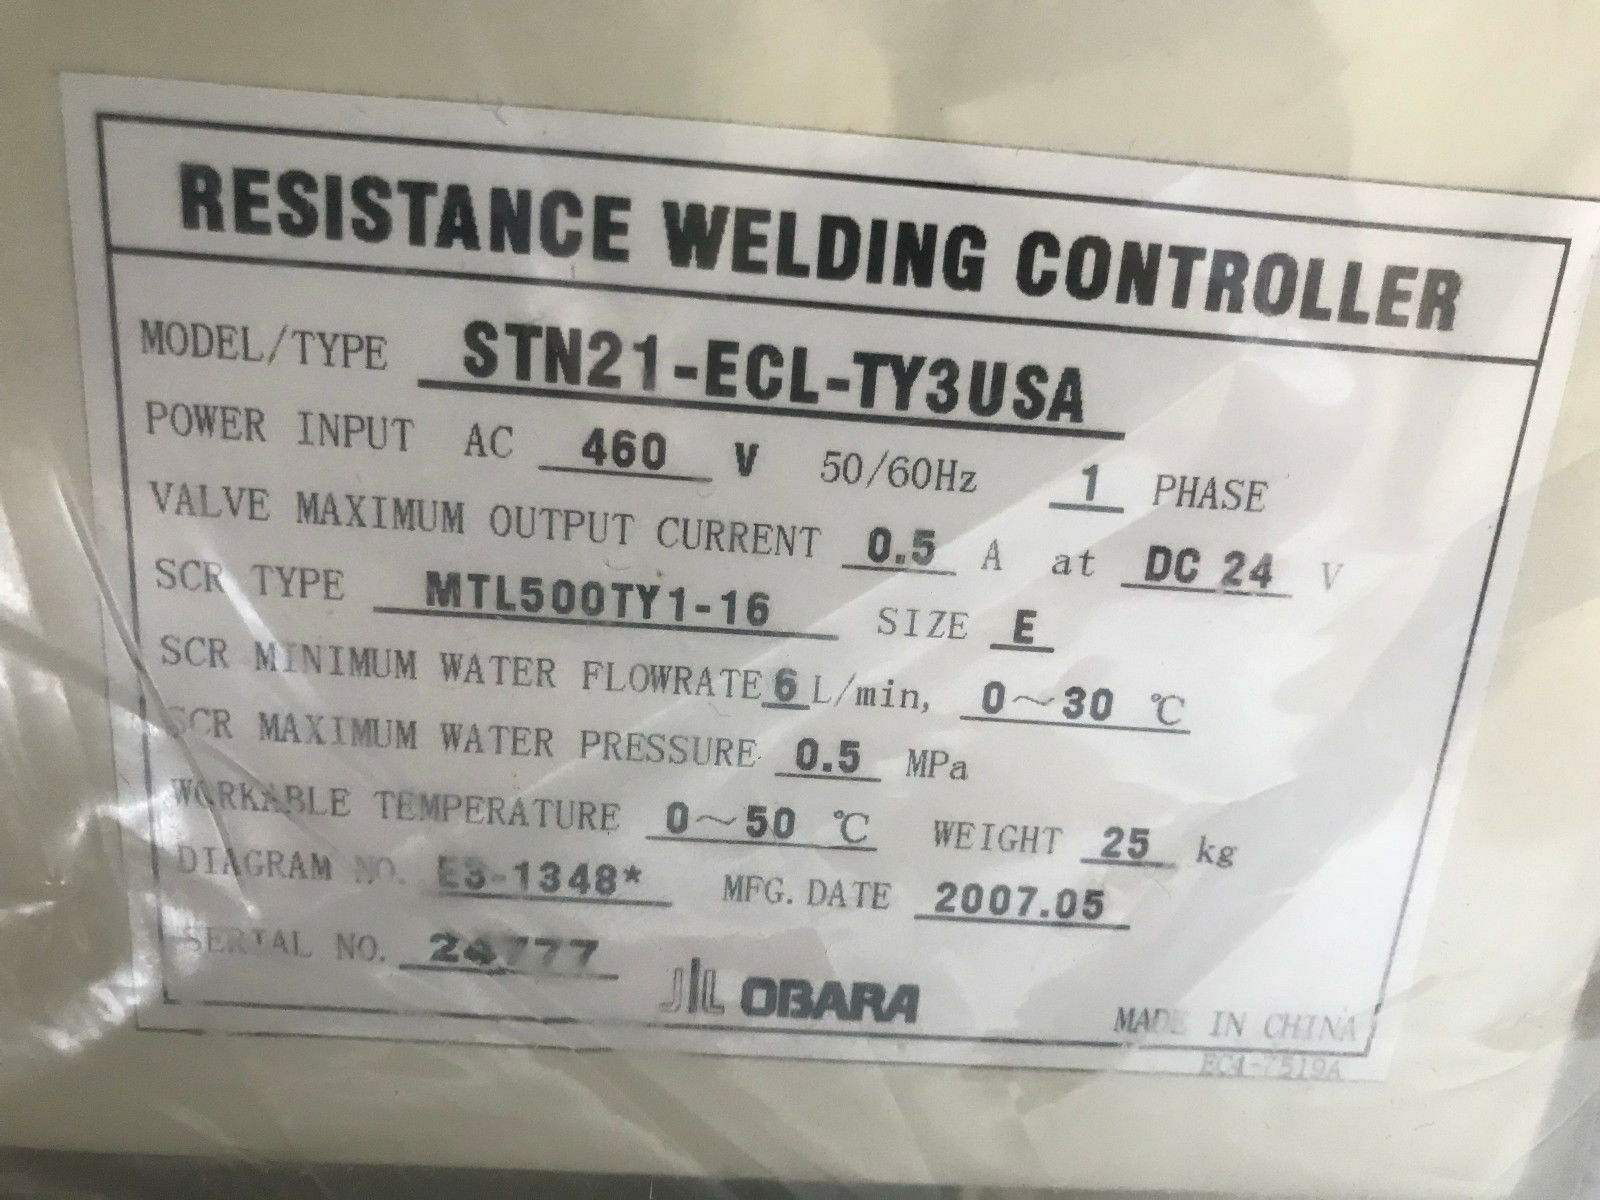 Obara Stn21 Ecl Ty3 Usa Resistance Welding Controller Diagram Norton Secured Powered By Verisign